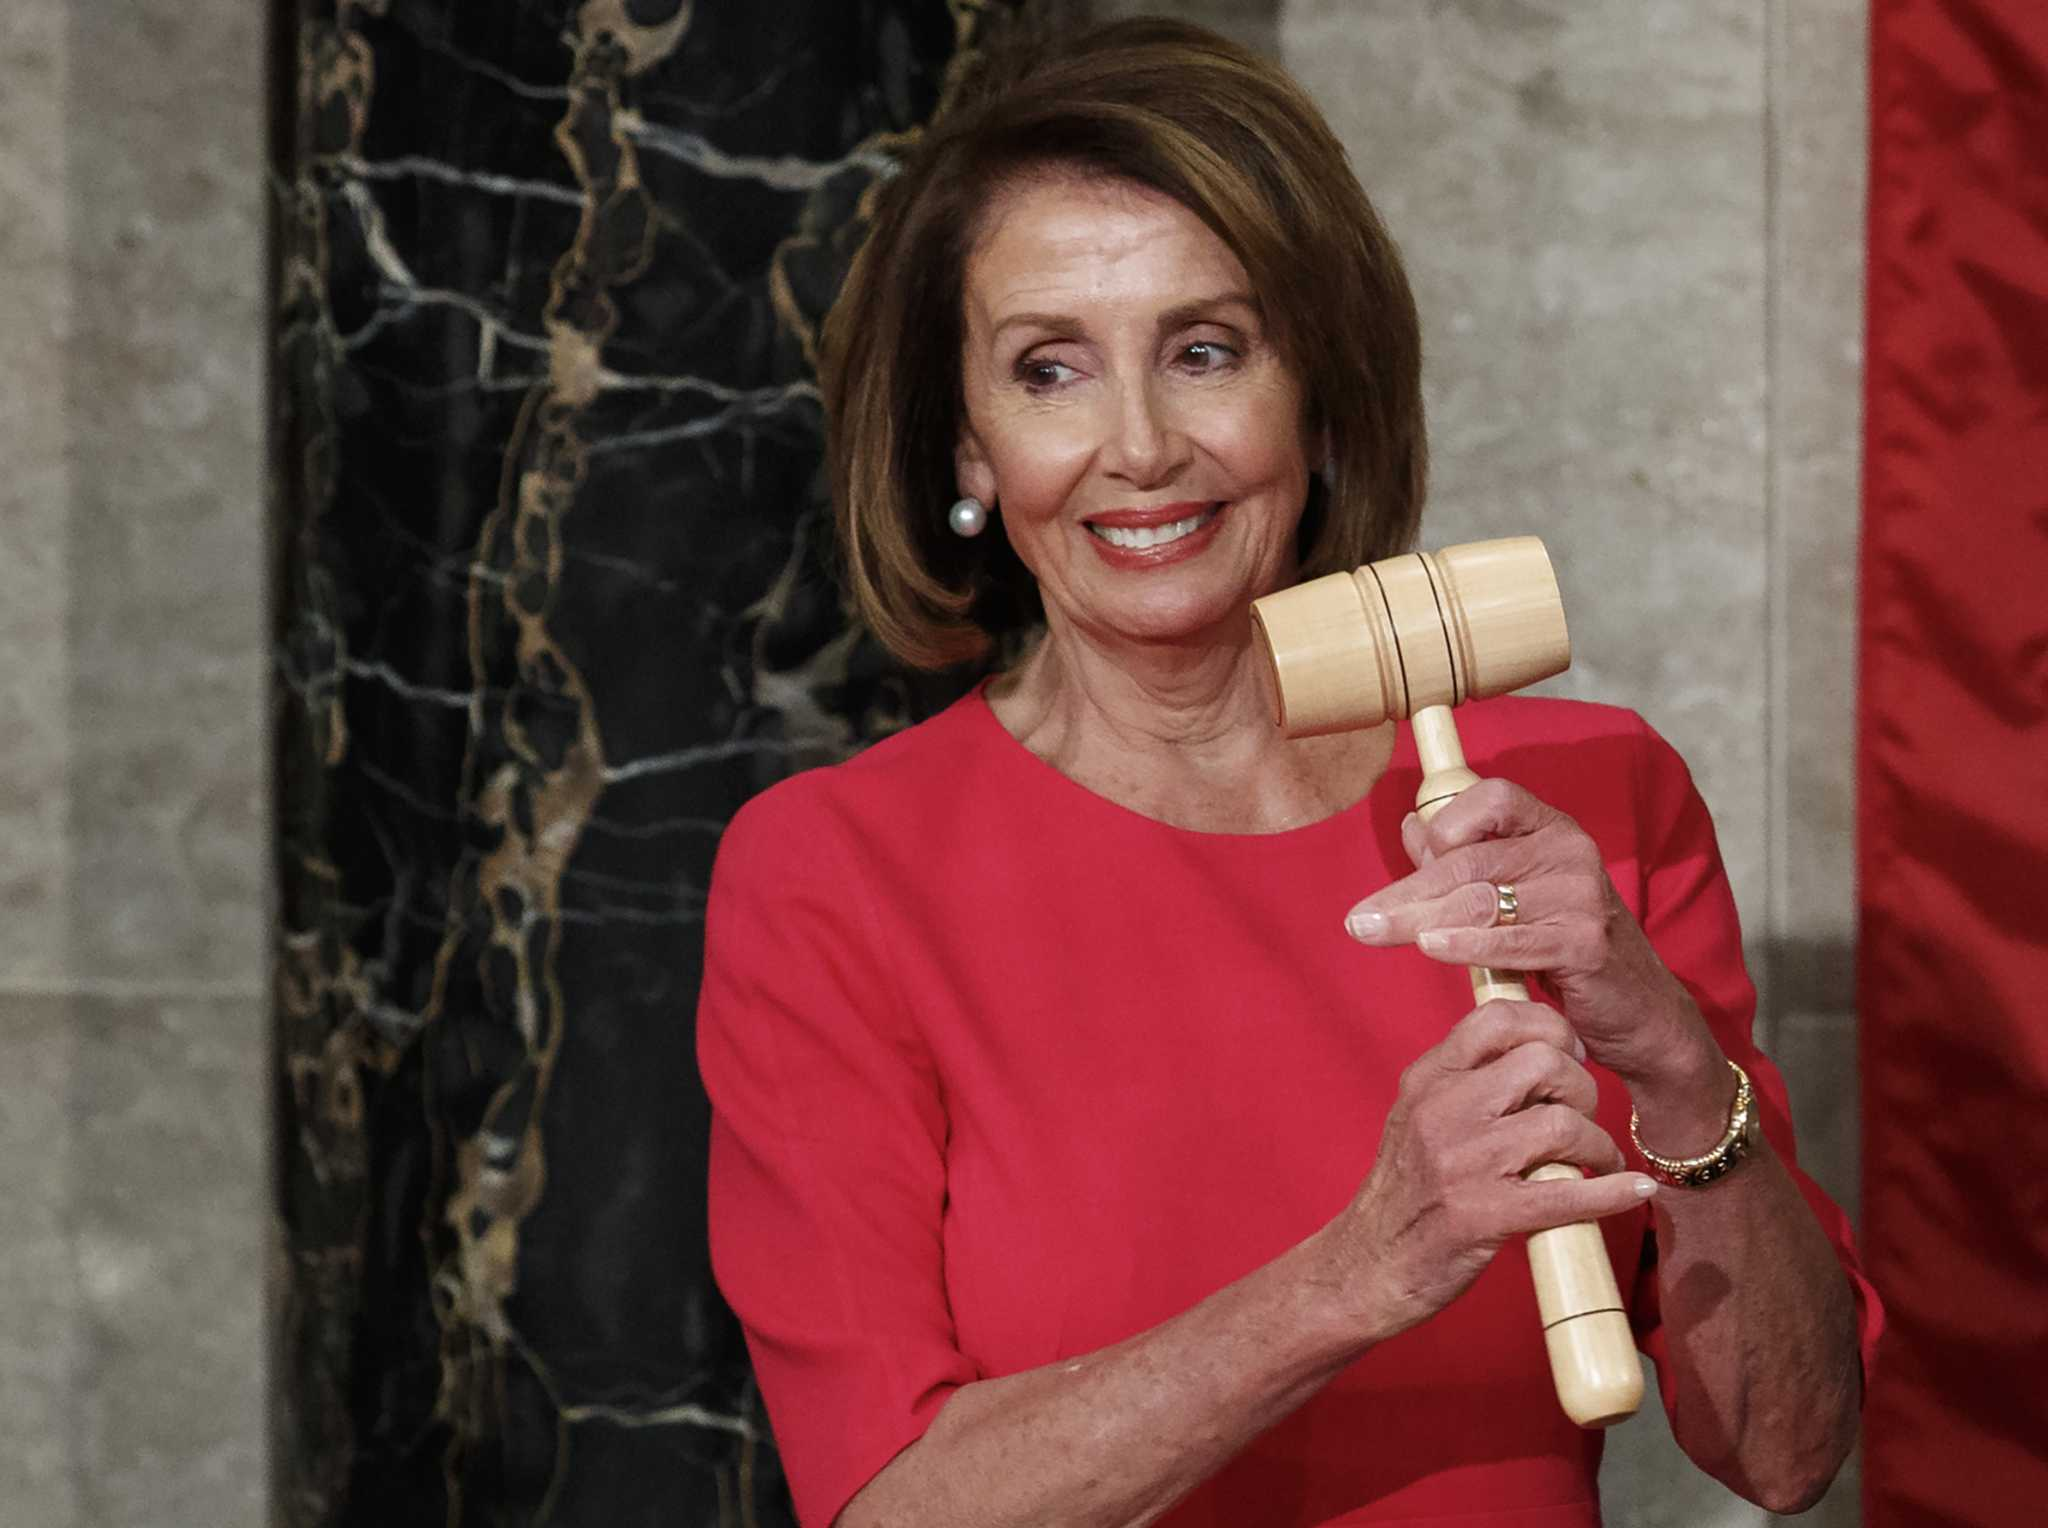 Allison Mack Nudography opinion: is it sexist to talk about what nancy pelosi is